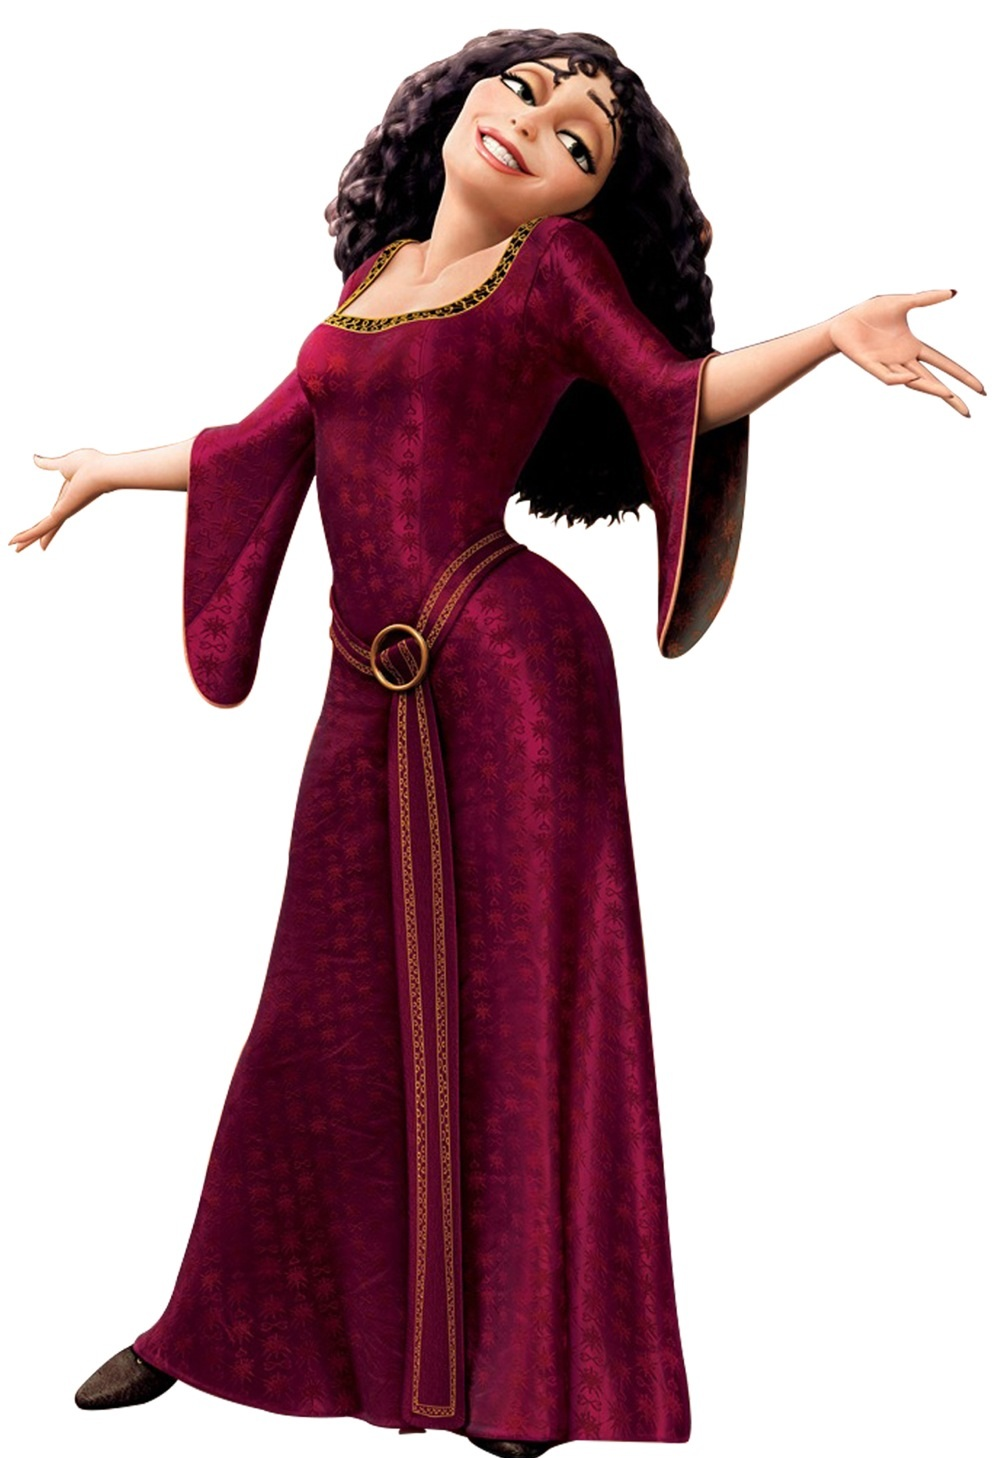 Mother gothel tangled disney